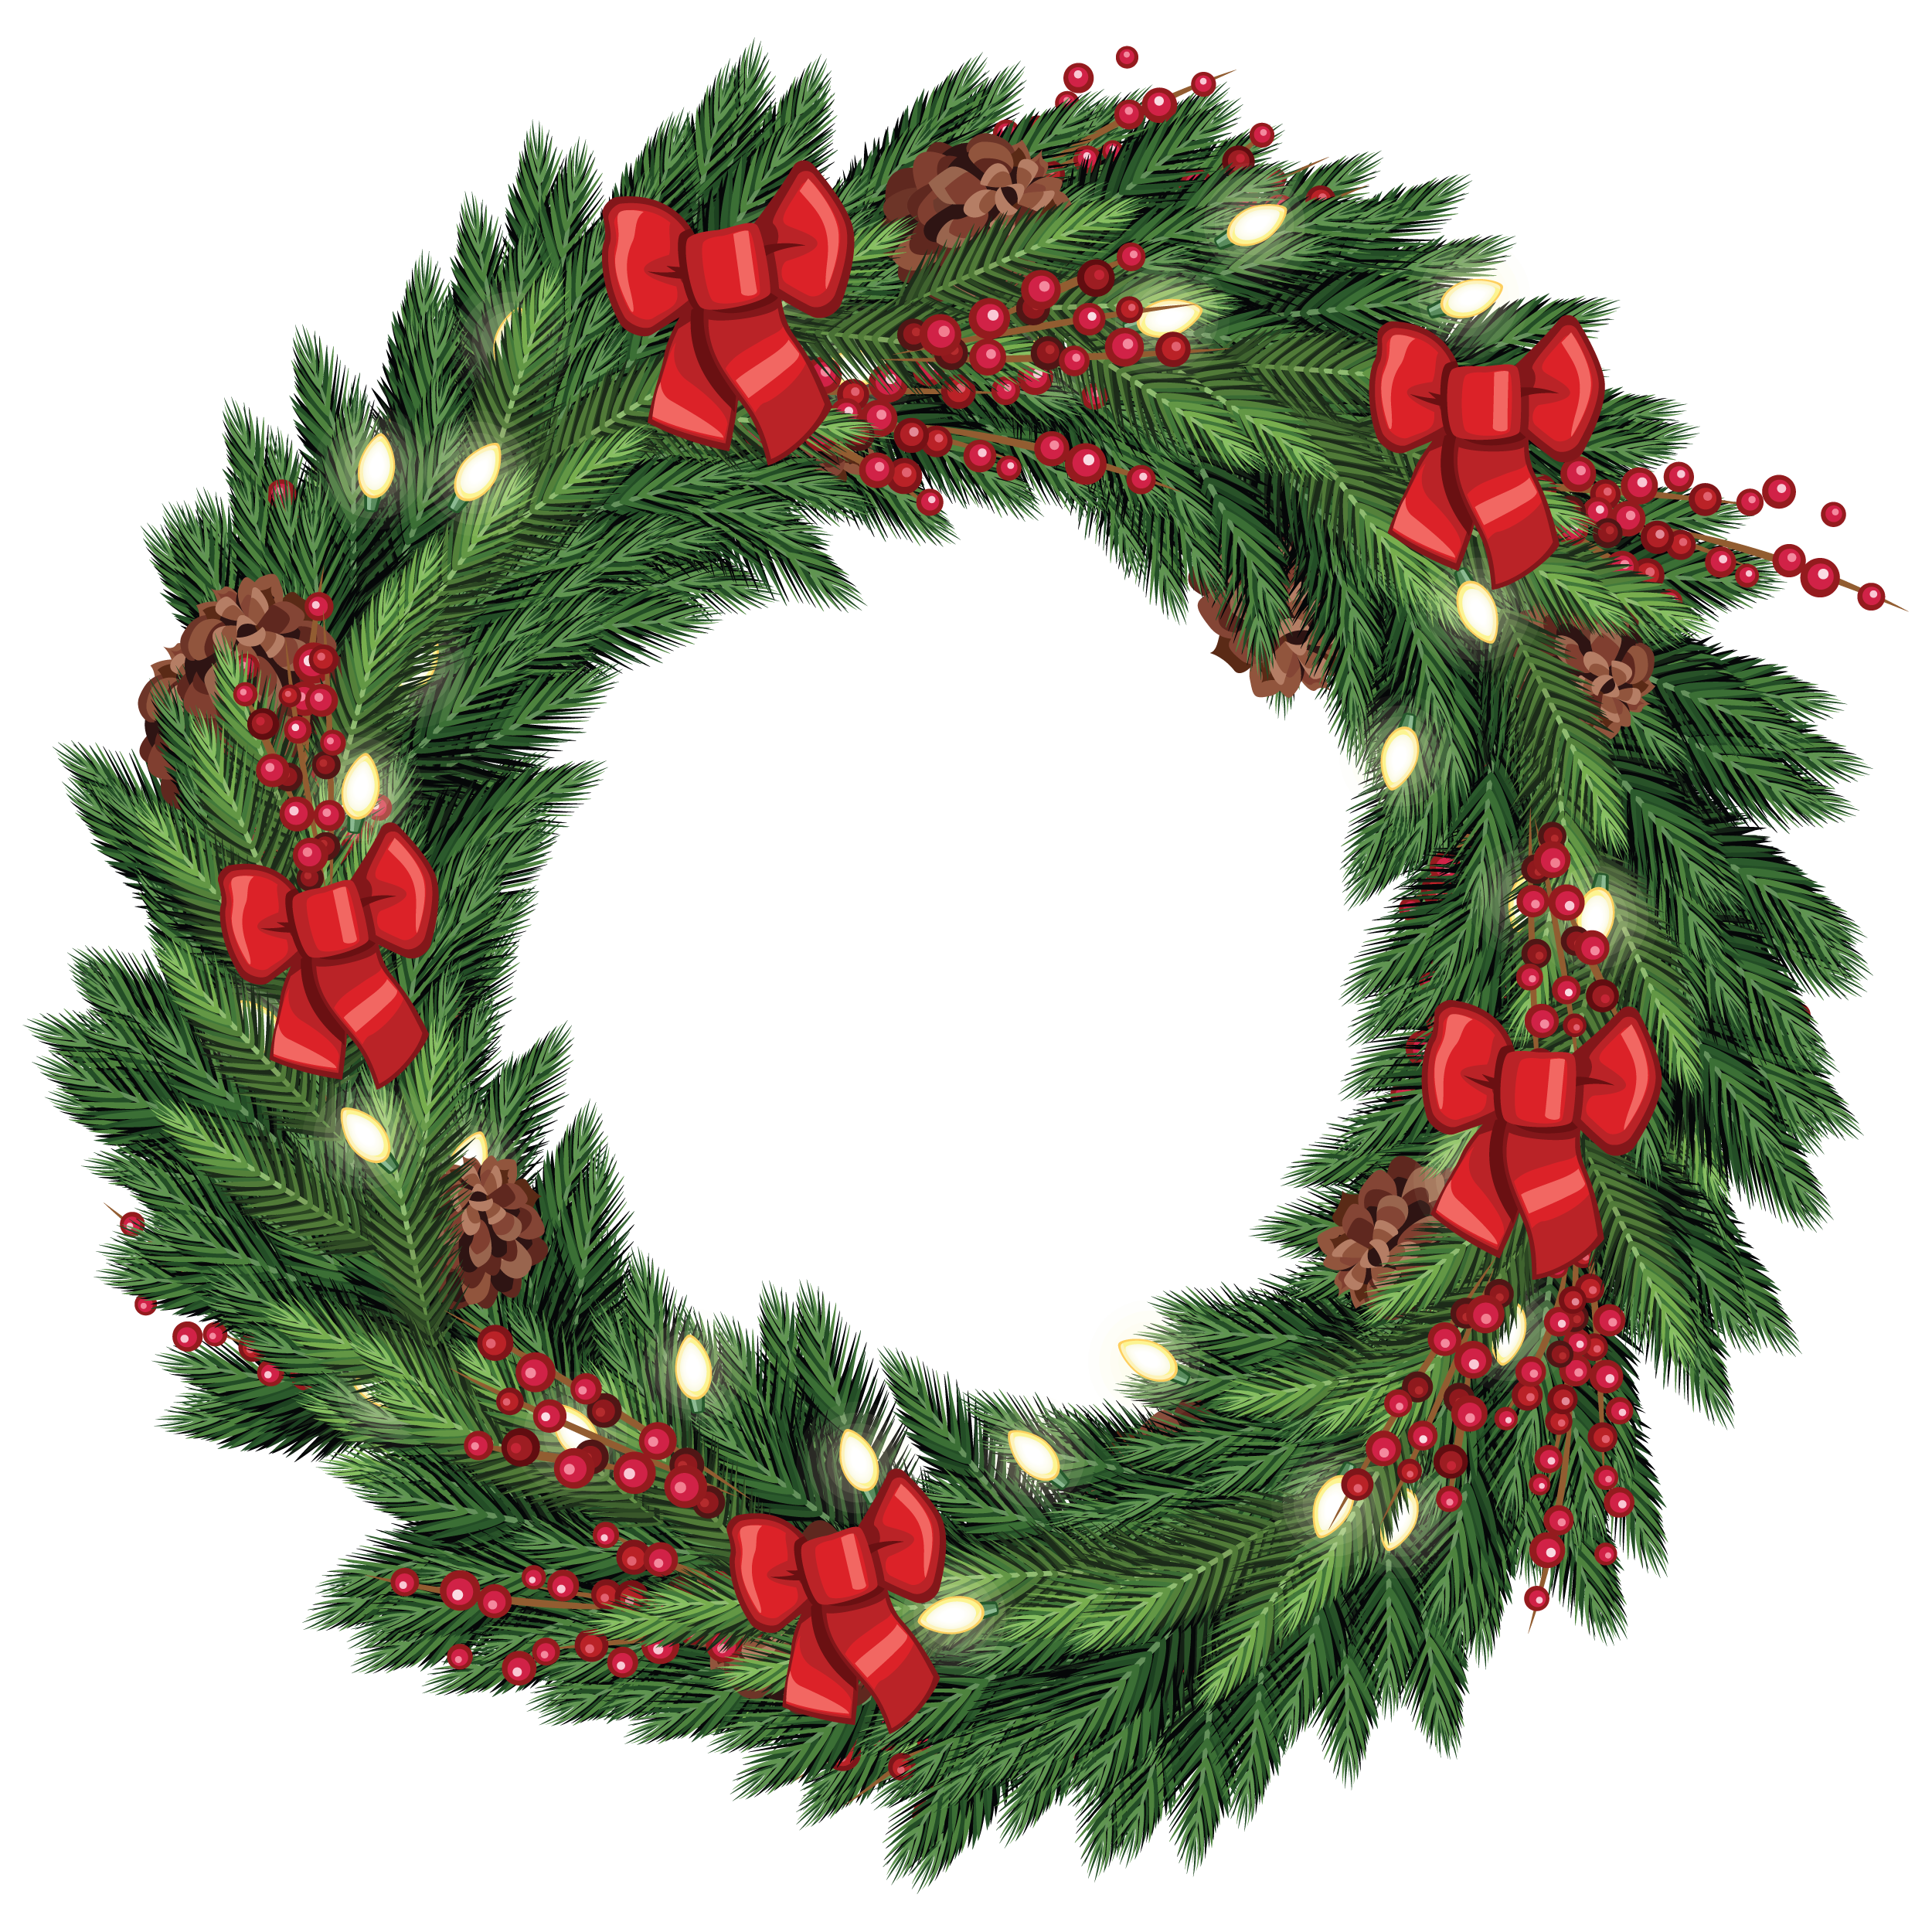 graphic freeuse download Accents clipart garland wreath. Free christmas graphic from.